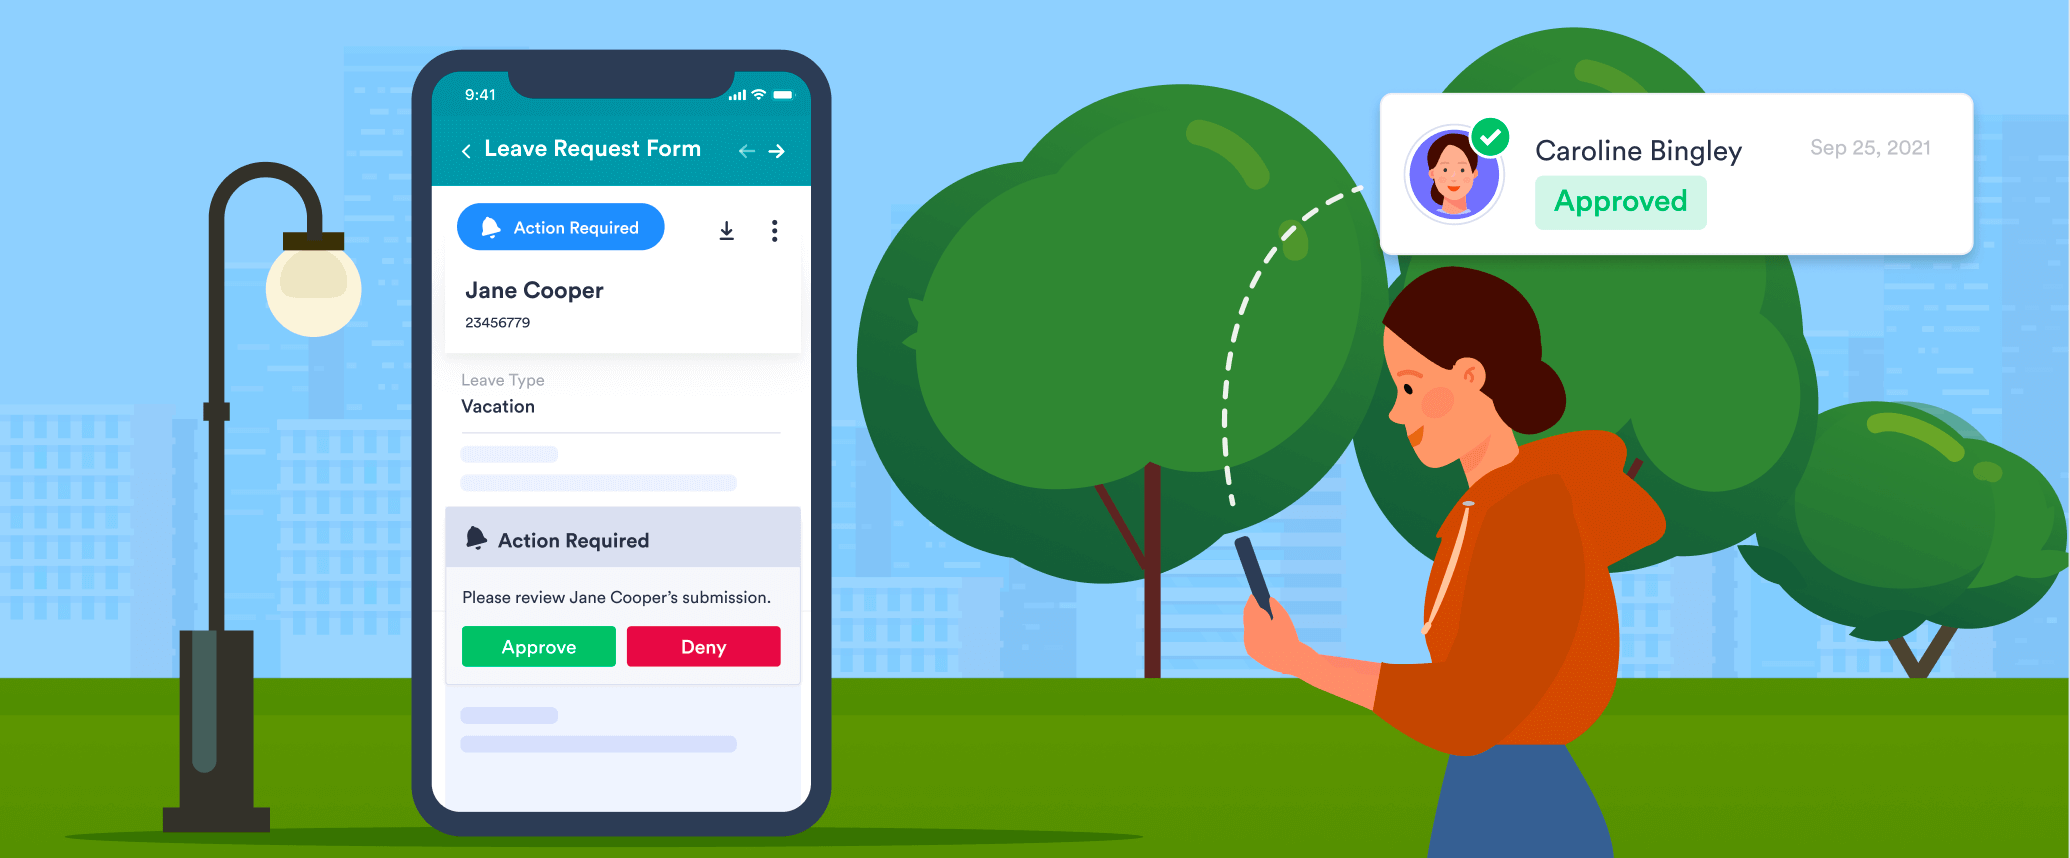 Approve requests on the go with JotForm Mobile Forms